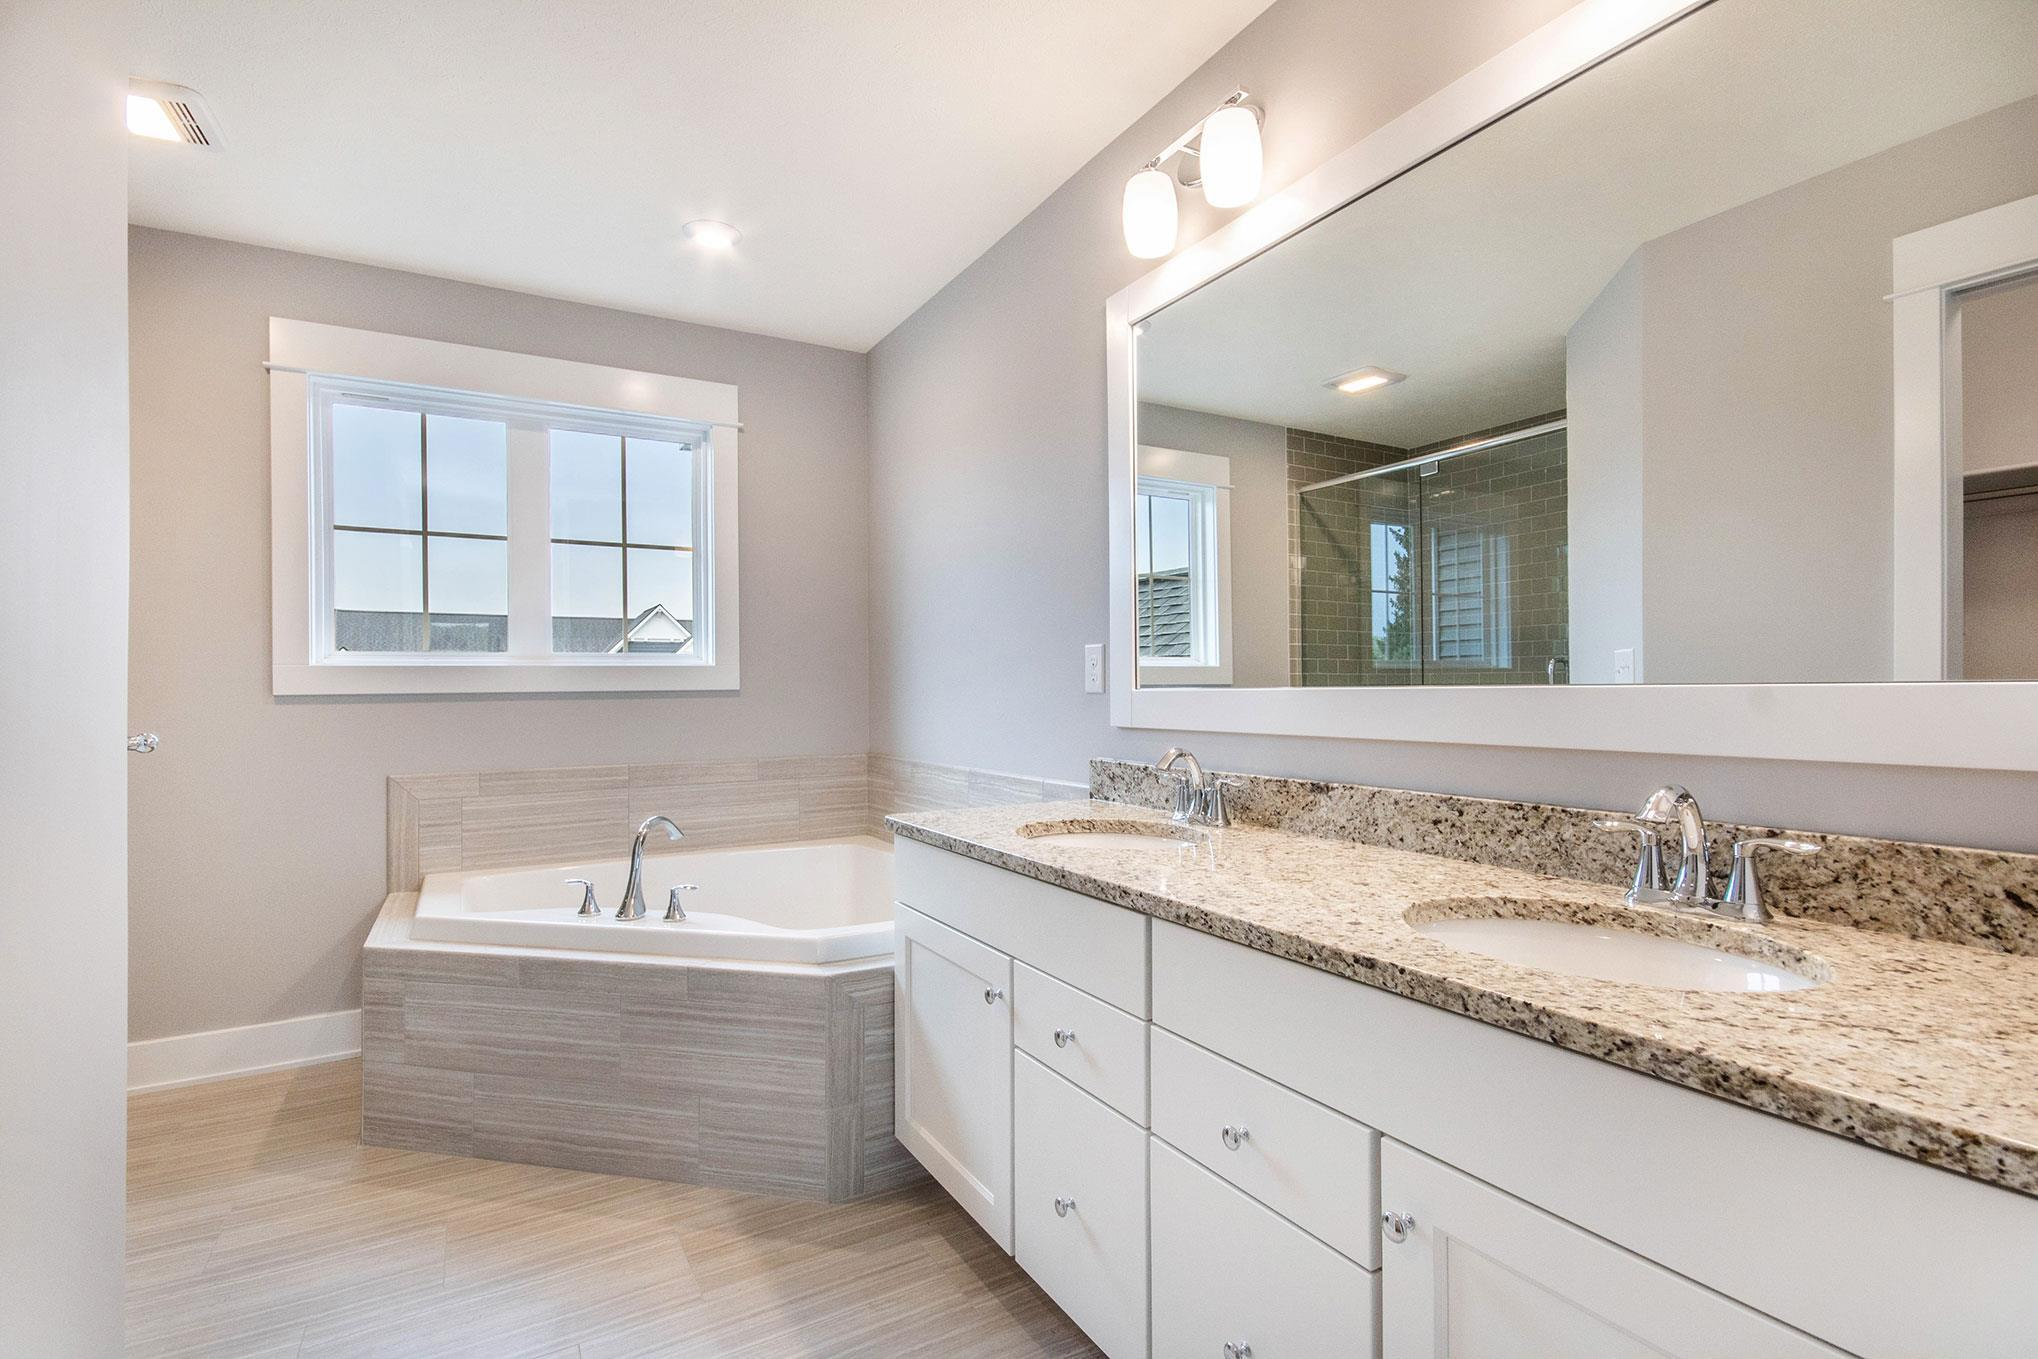 Bathroom featured in The Crestview By Eastbrook Homes Inc. in Lansing, MI